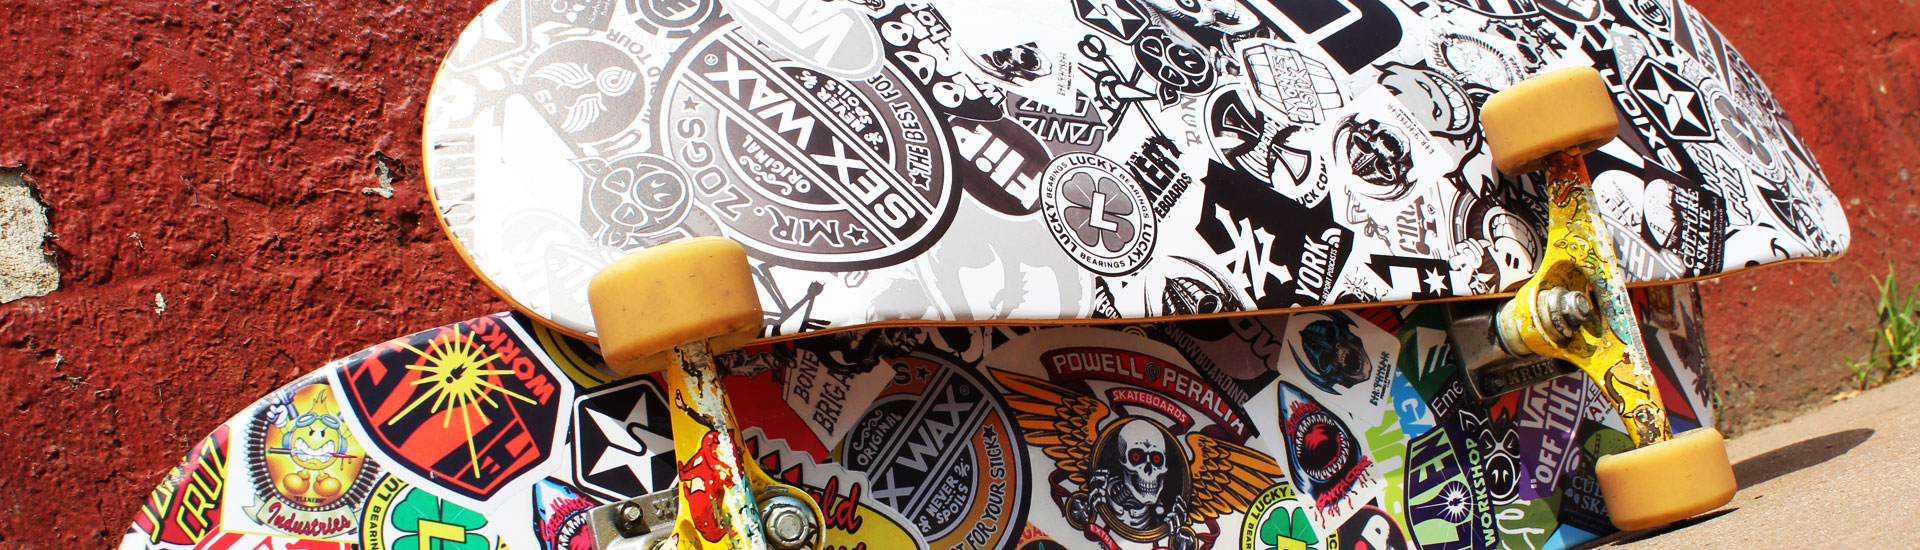 Skateboard Graphic Vinyl Skins